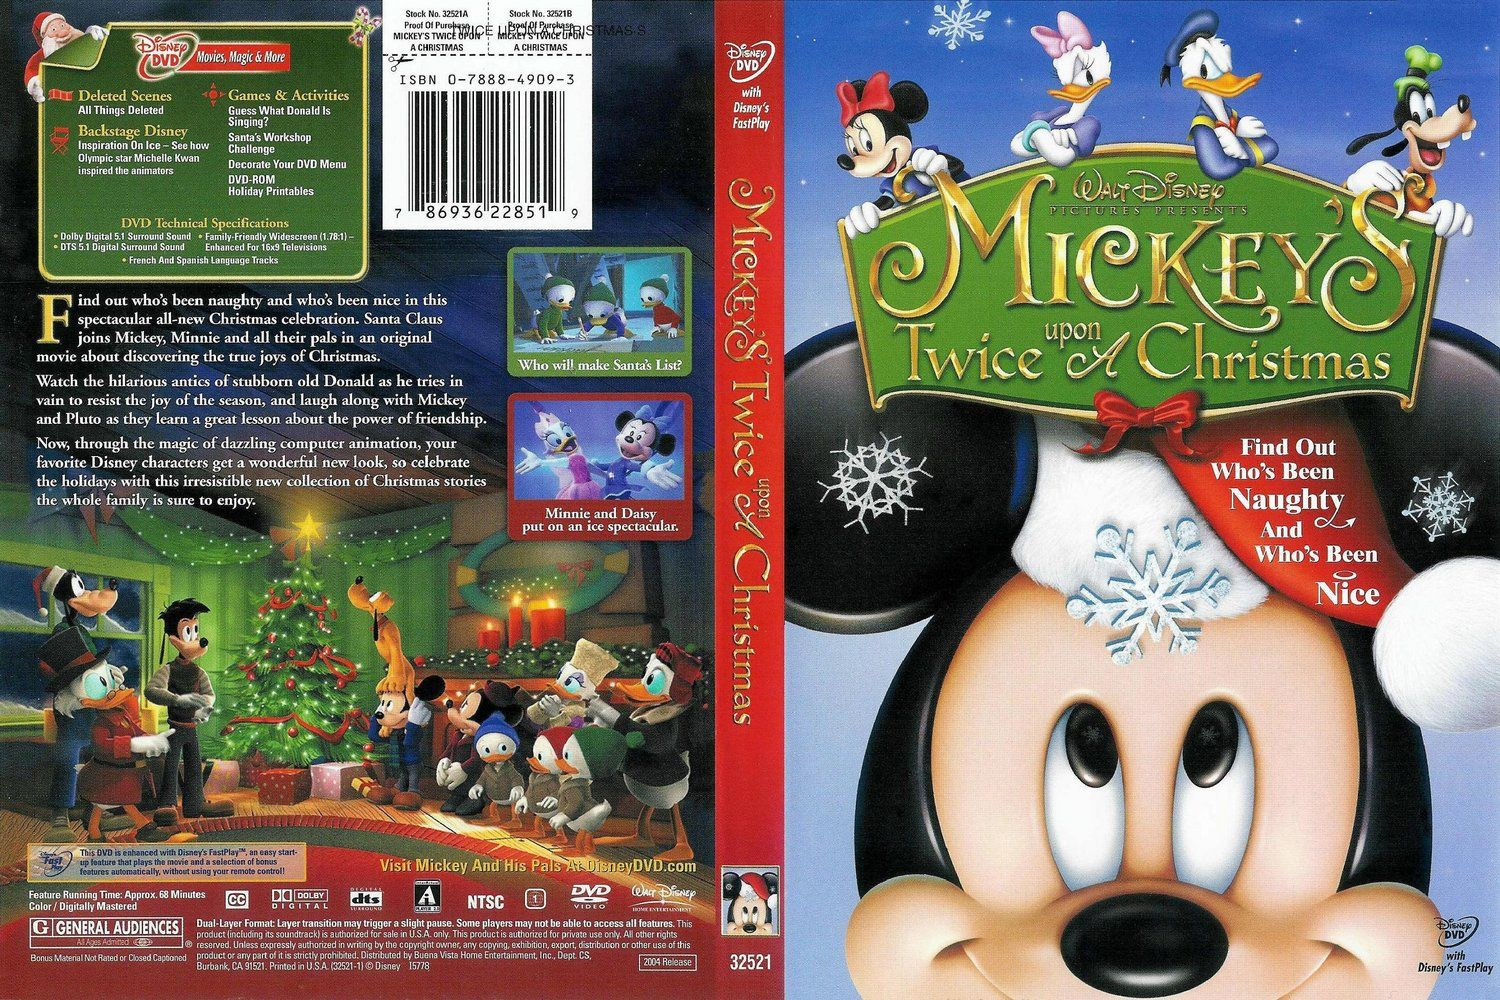 Mickey's Twice Upon Christmas DVD | cine | Pinterest